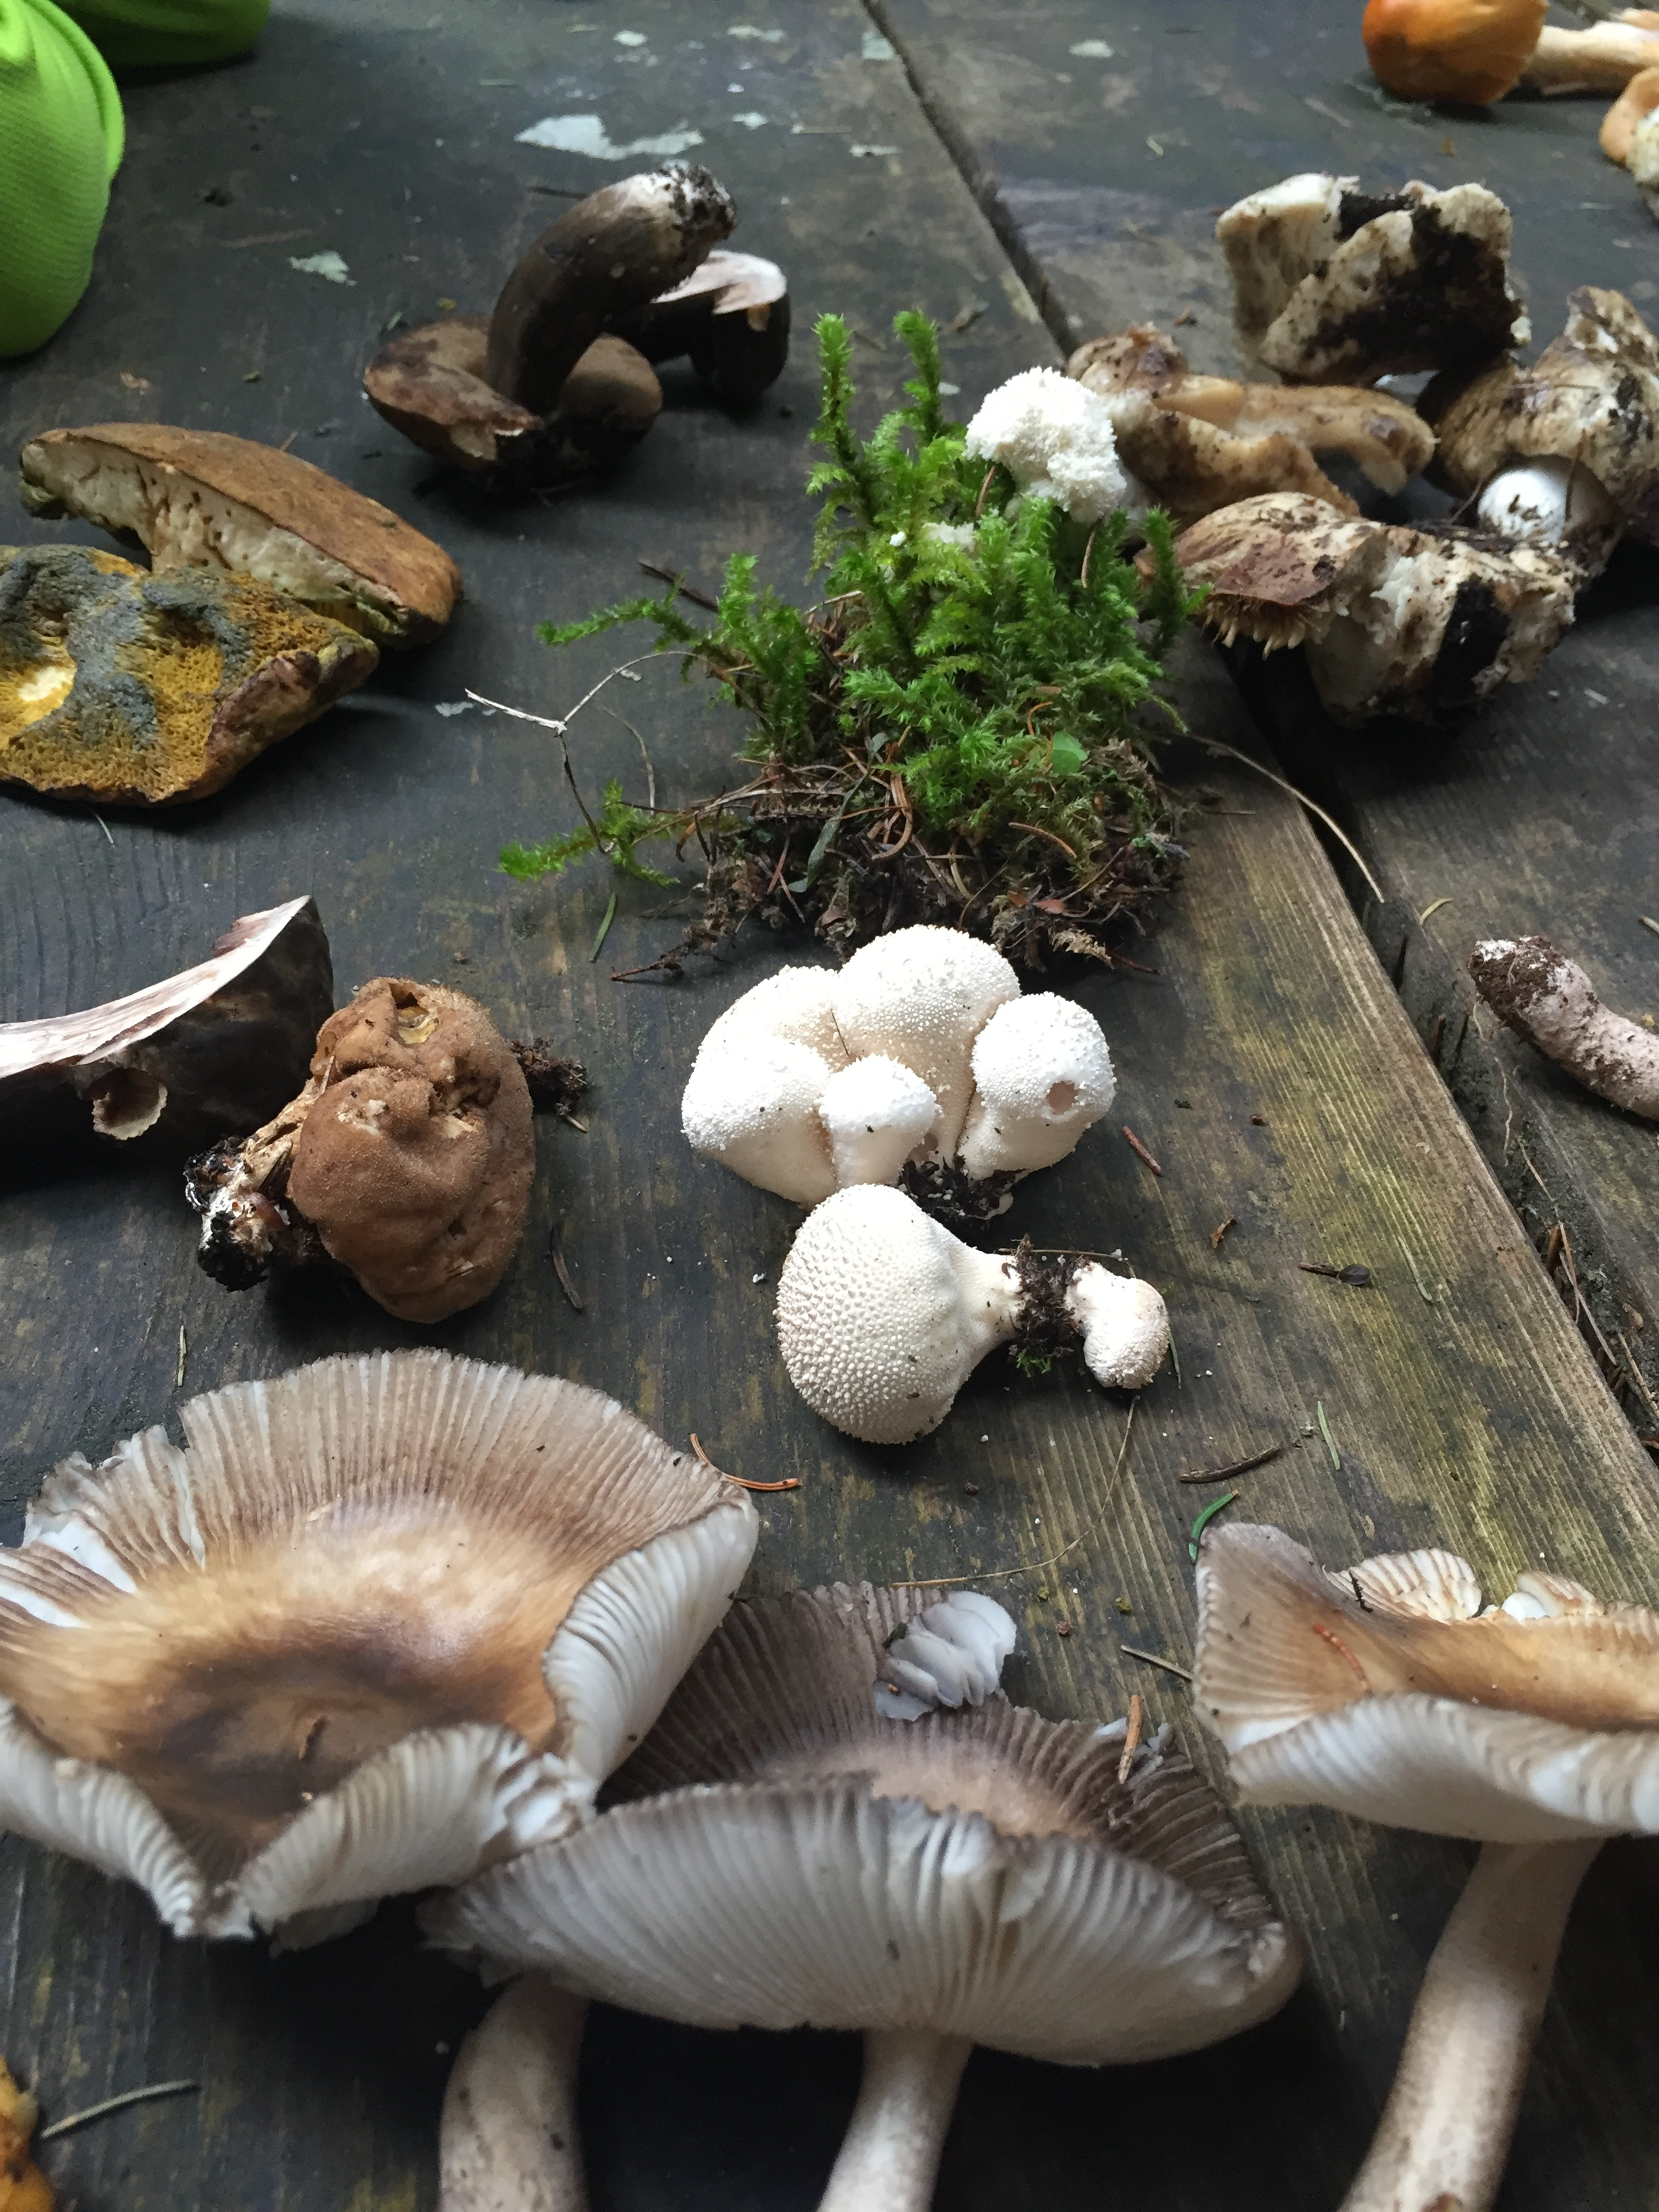 The bounty of their labor - these are some expert mycologists!